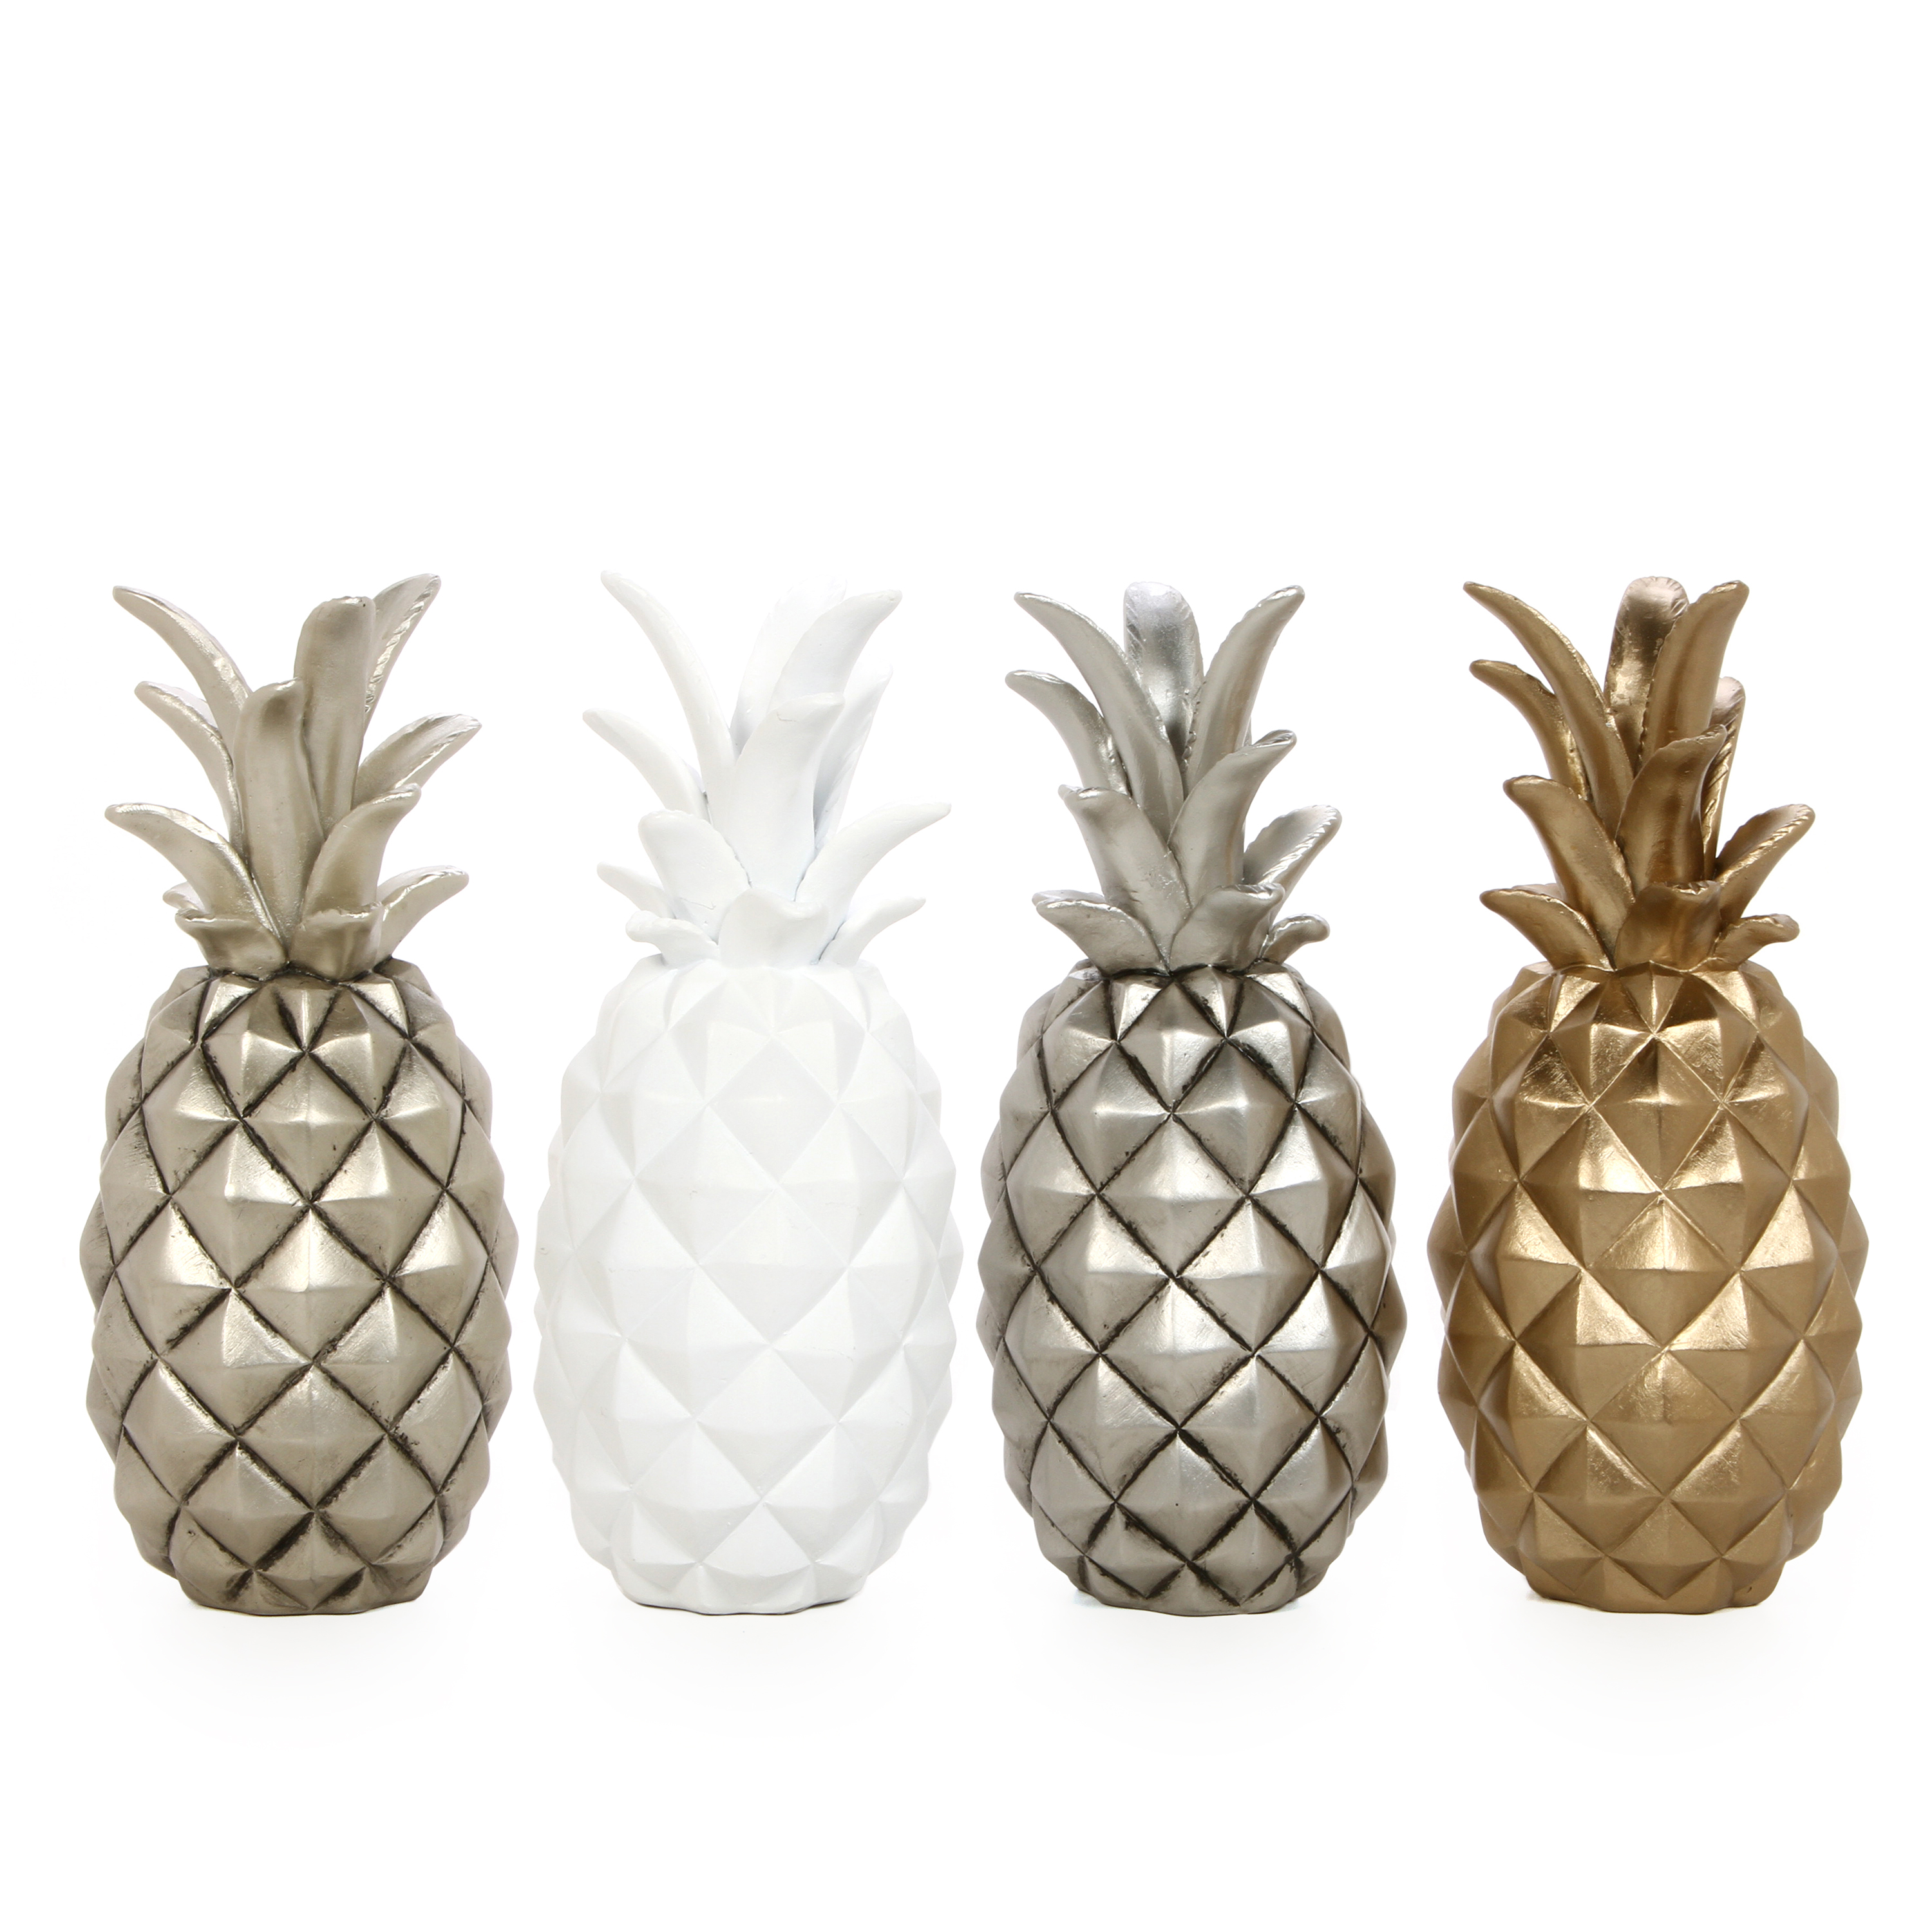 "Mainstays 12.5"" High Tabletop Resin Pineapples, Four Color Assortment"